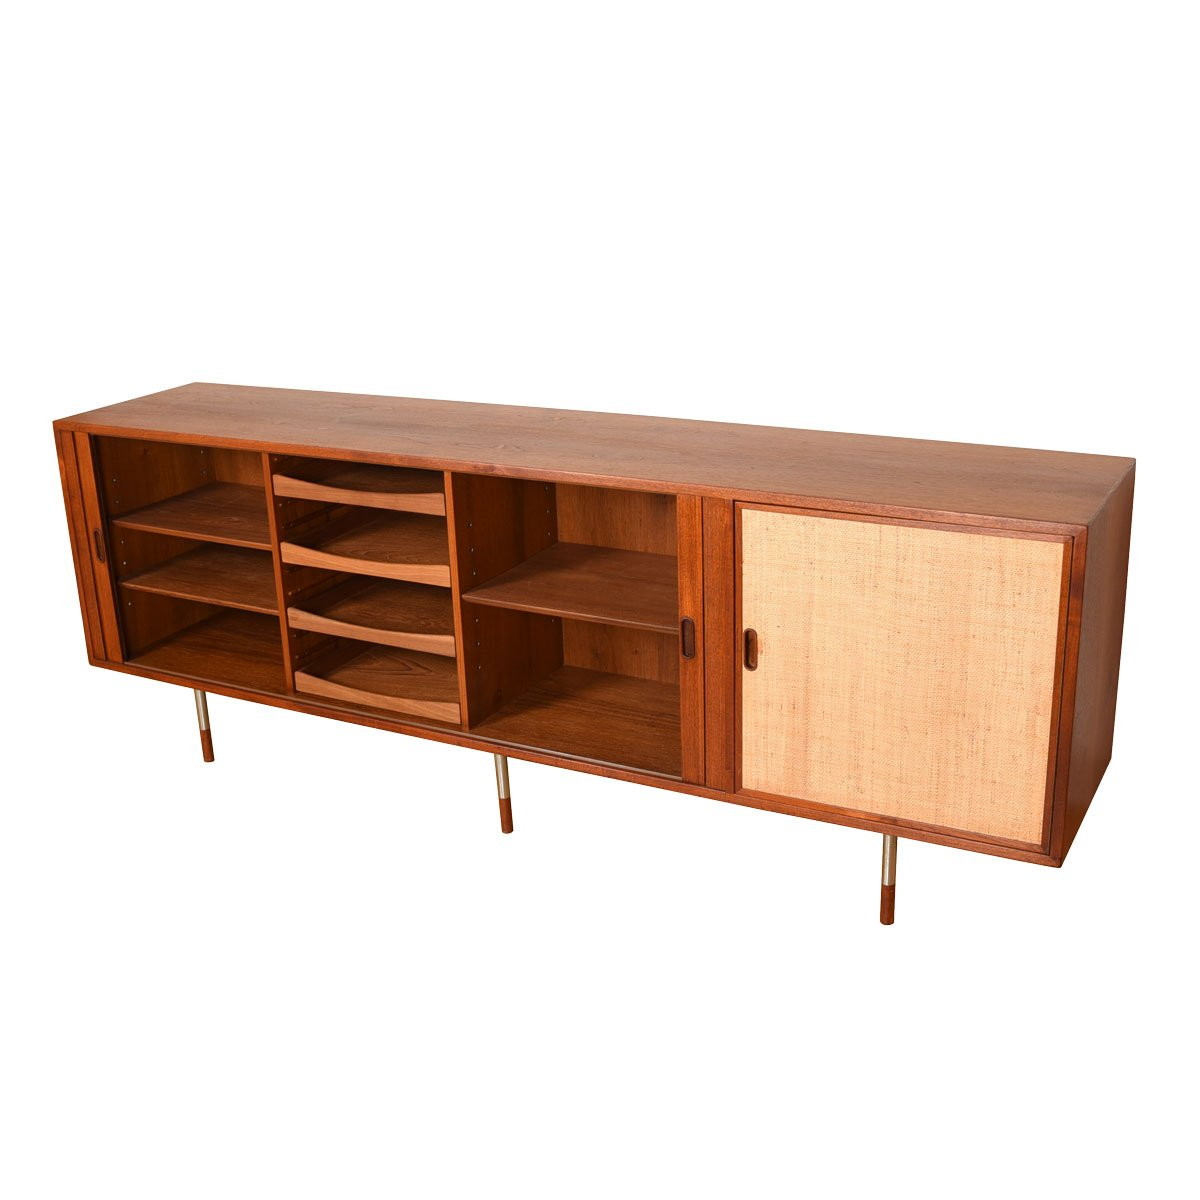 Arne Vodder Tambour Credenza w/ Rare Configuration of Caned Door + Steel Legs.